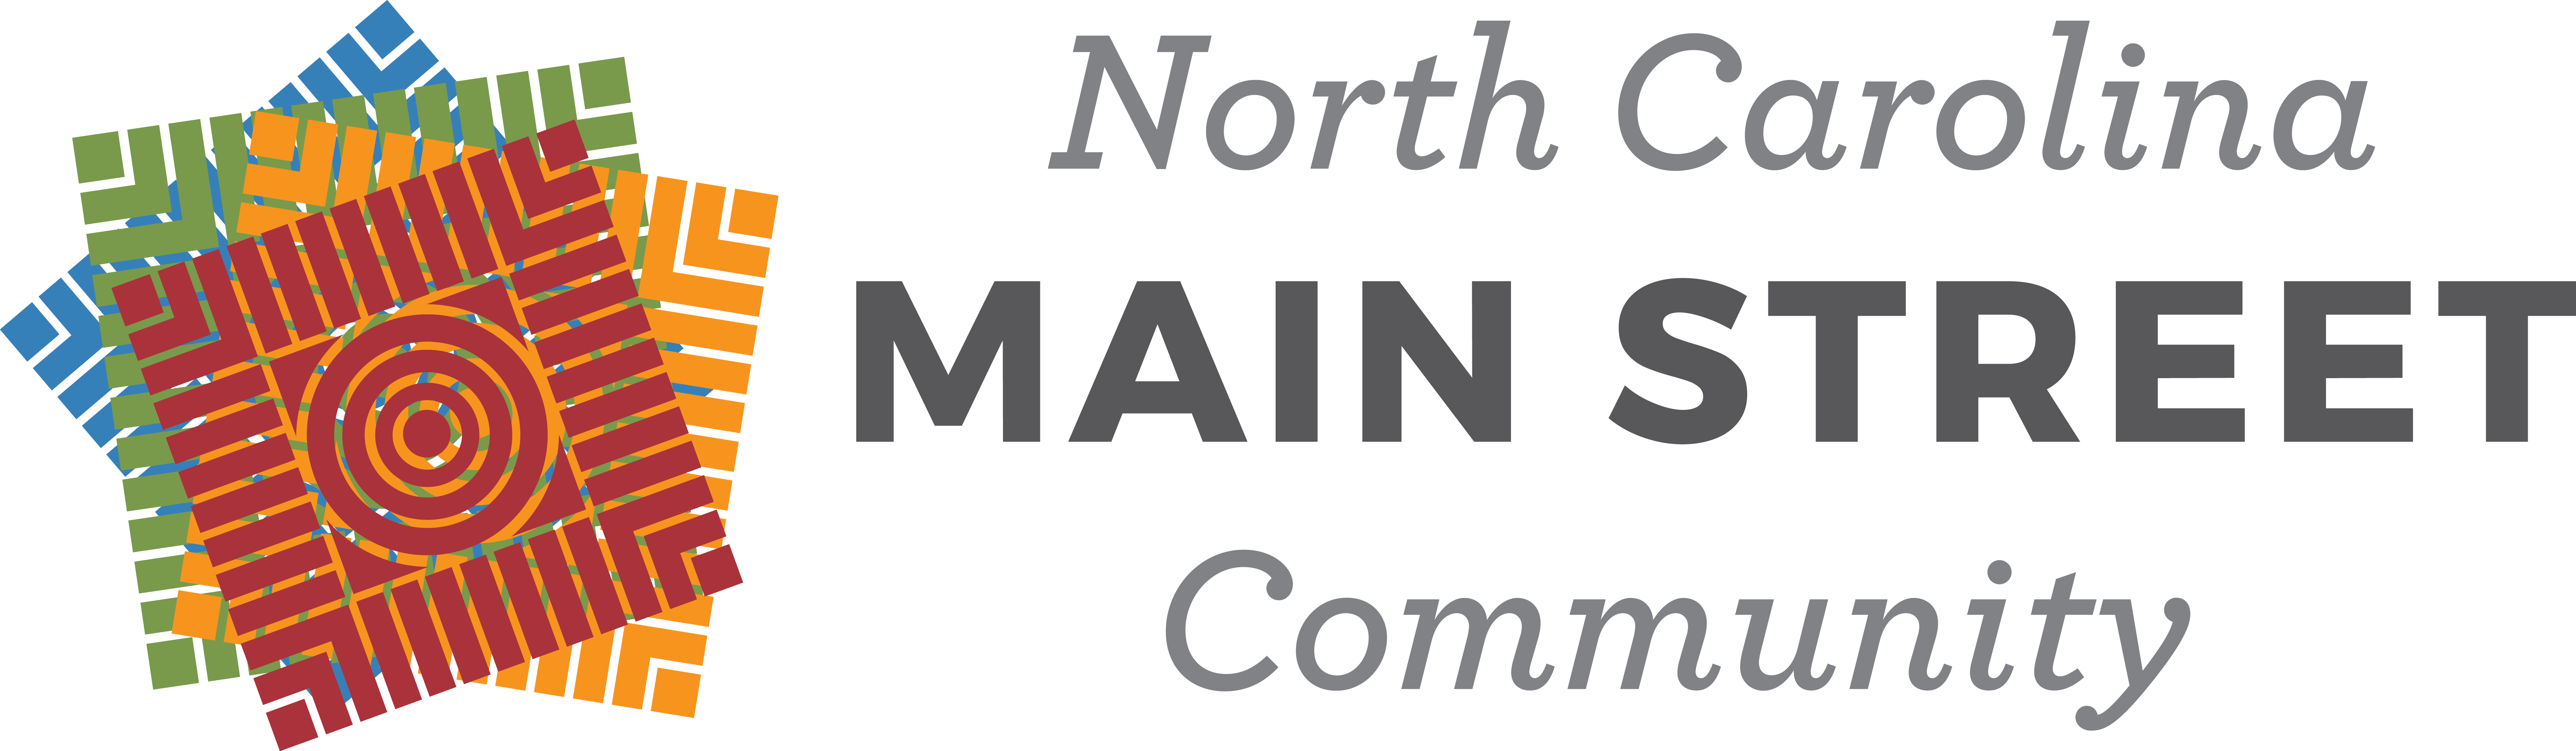 NC Main Street Community FINAL 4C Horizontal